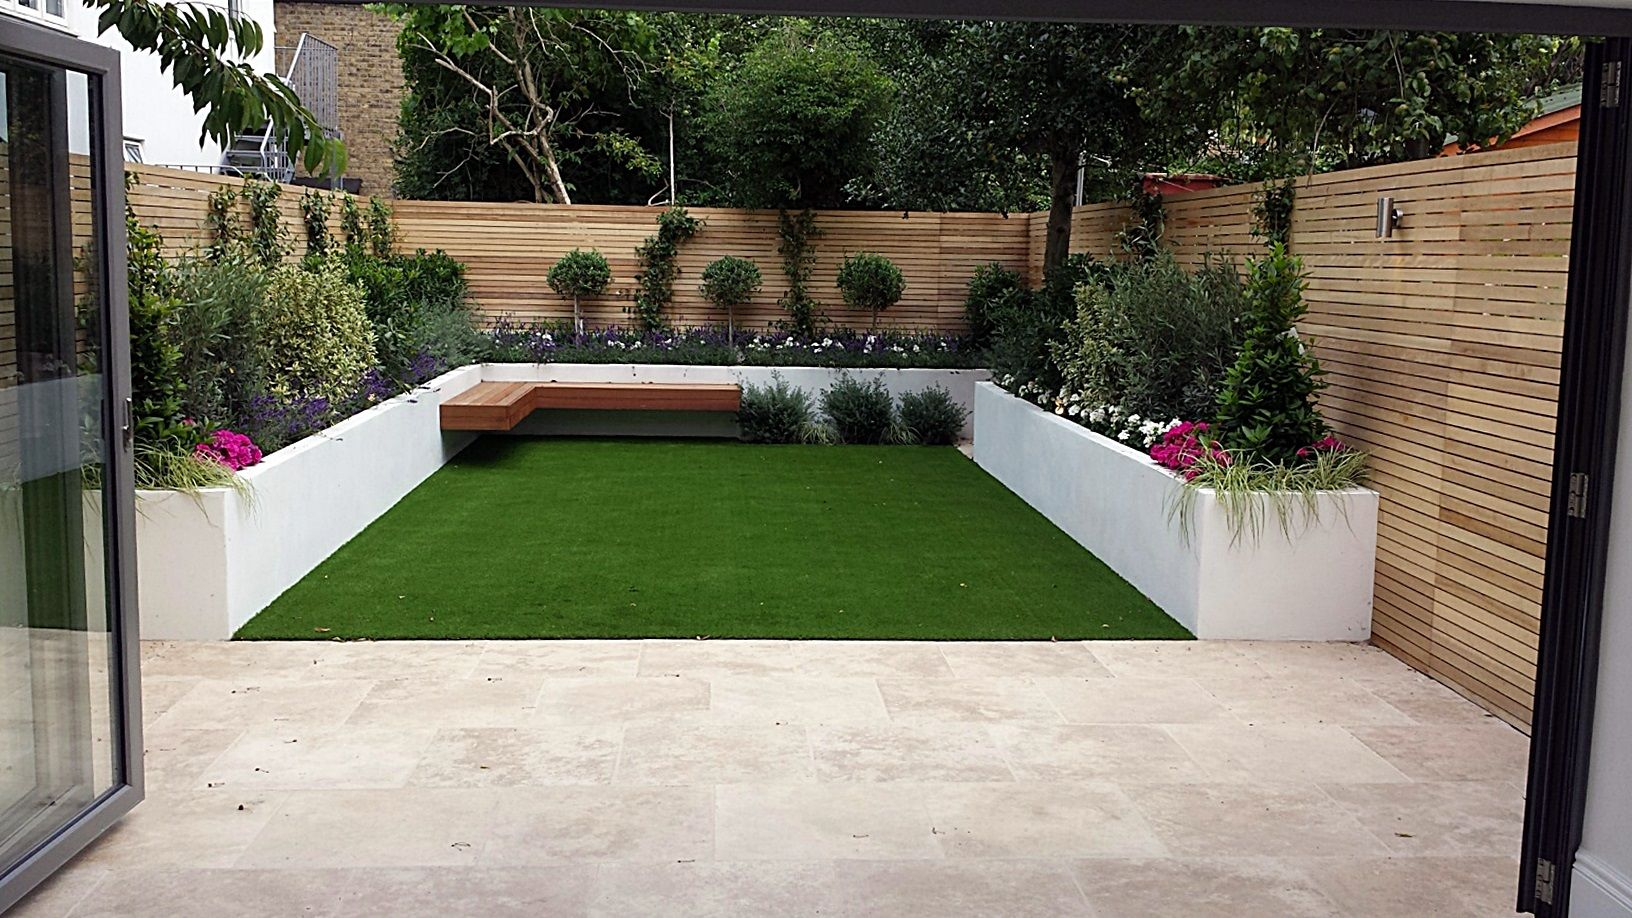 Artifical Grass Easi Lawn Fake Turf Raised Beds Painted